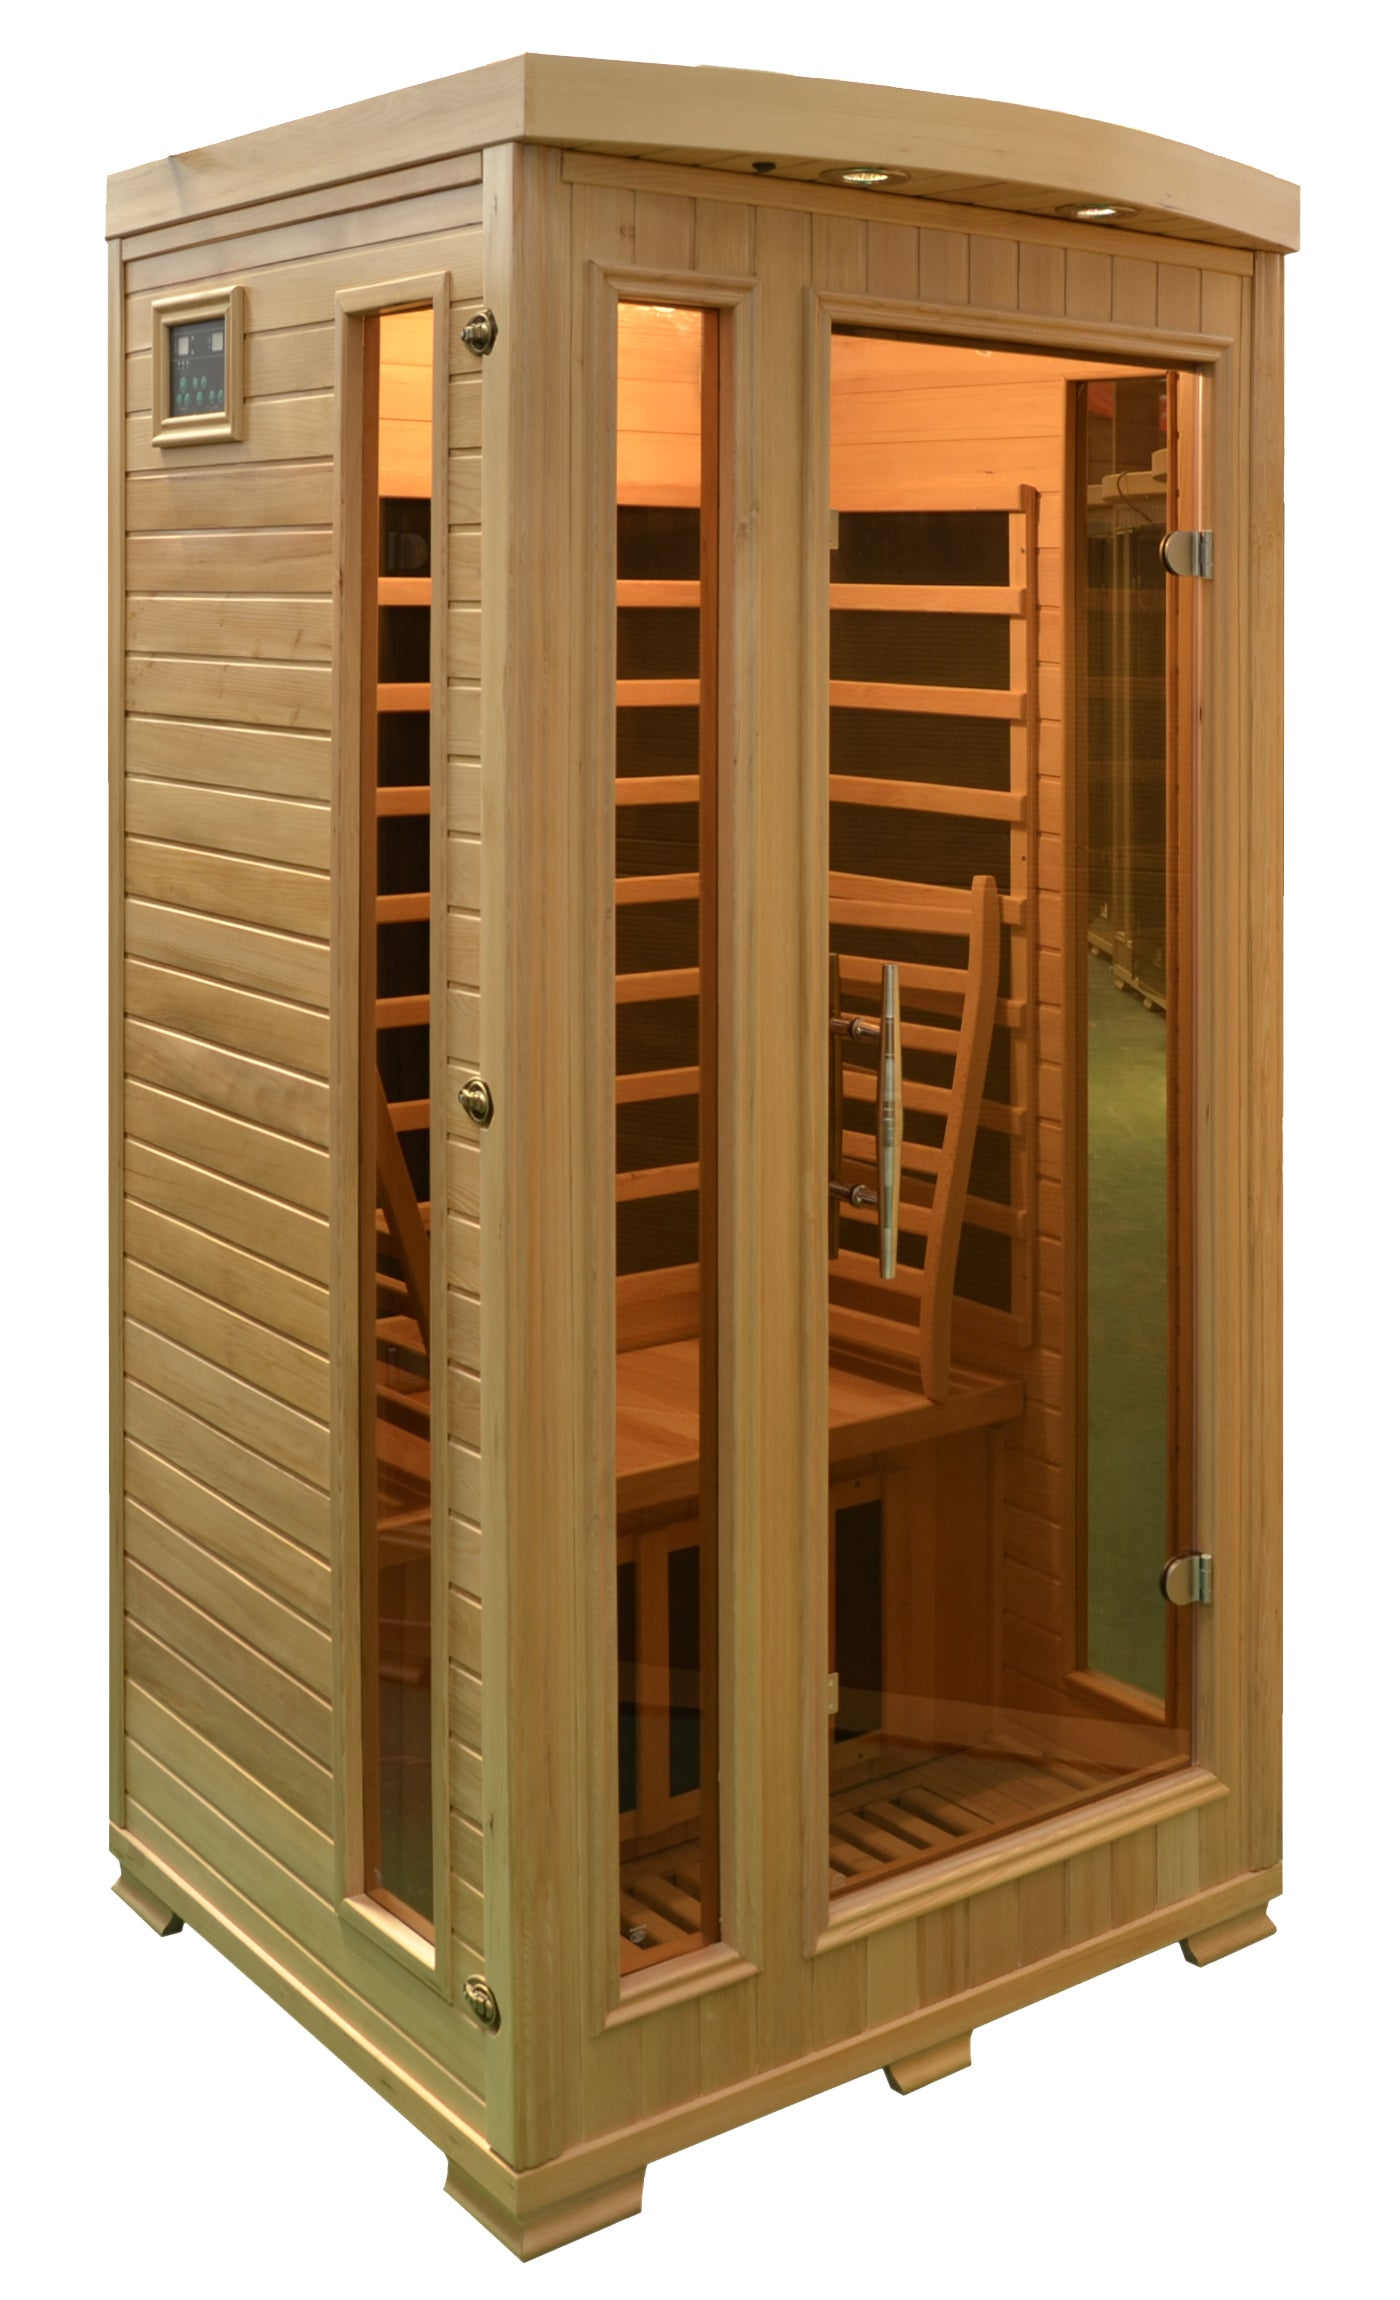 Sun Rich SR4036 1 2 Person Sauna